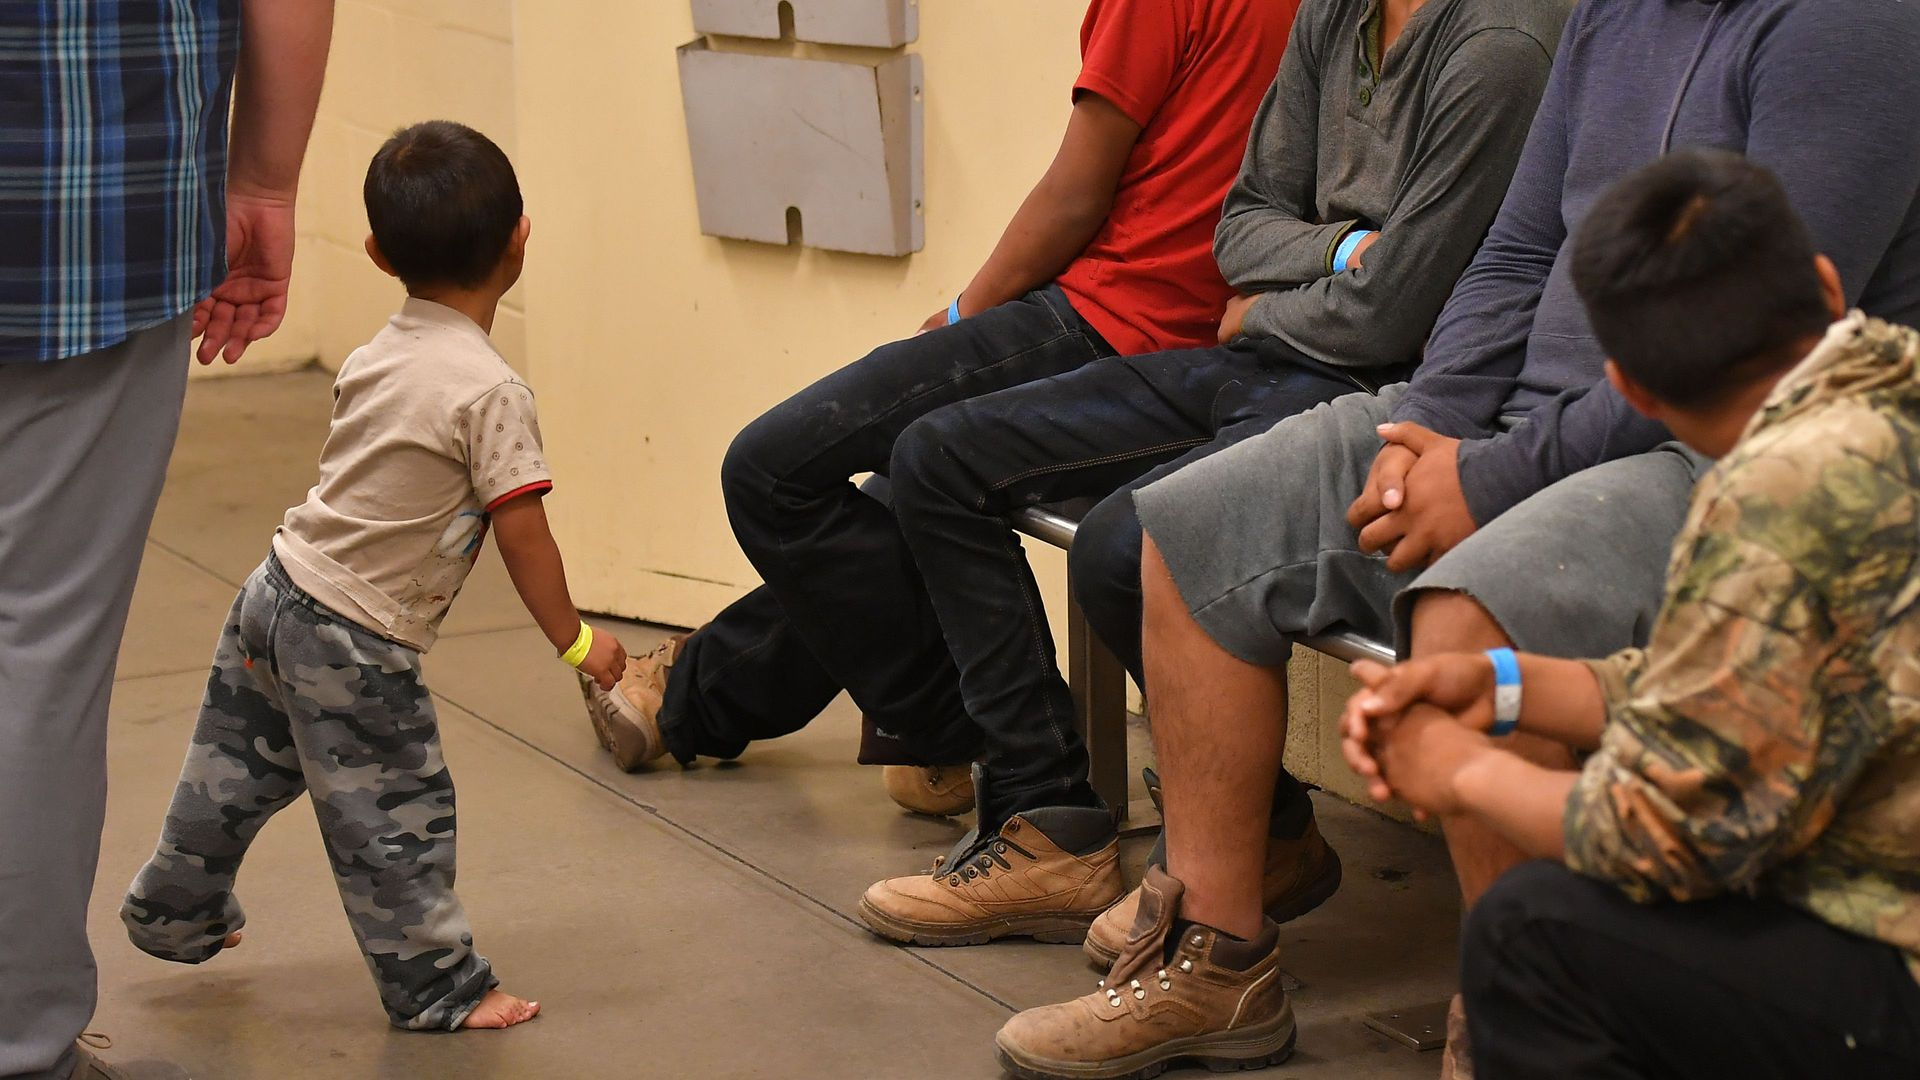 Young migrant children at a U.S. Customs and Border Protection Facility in Tucson, Arizona. Photo: Madel Ngan/AFP/Getty Images